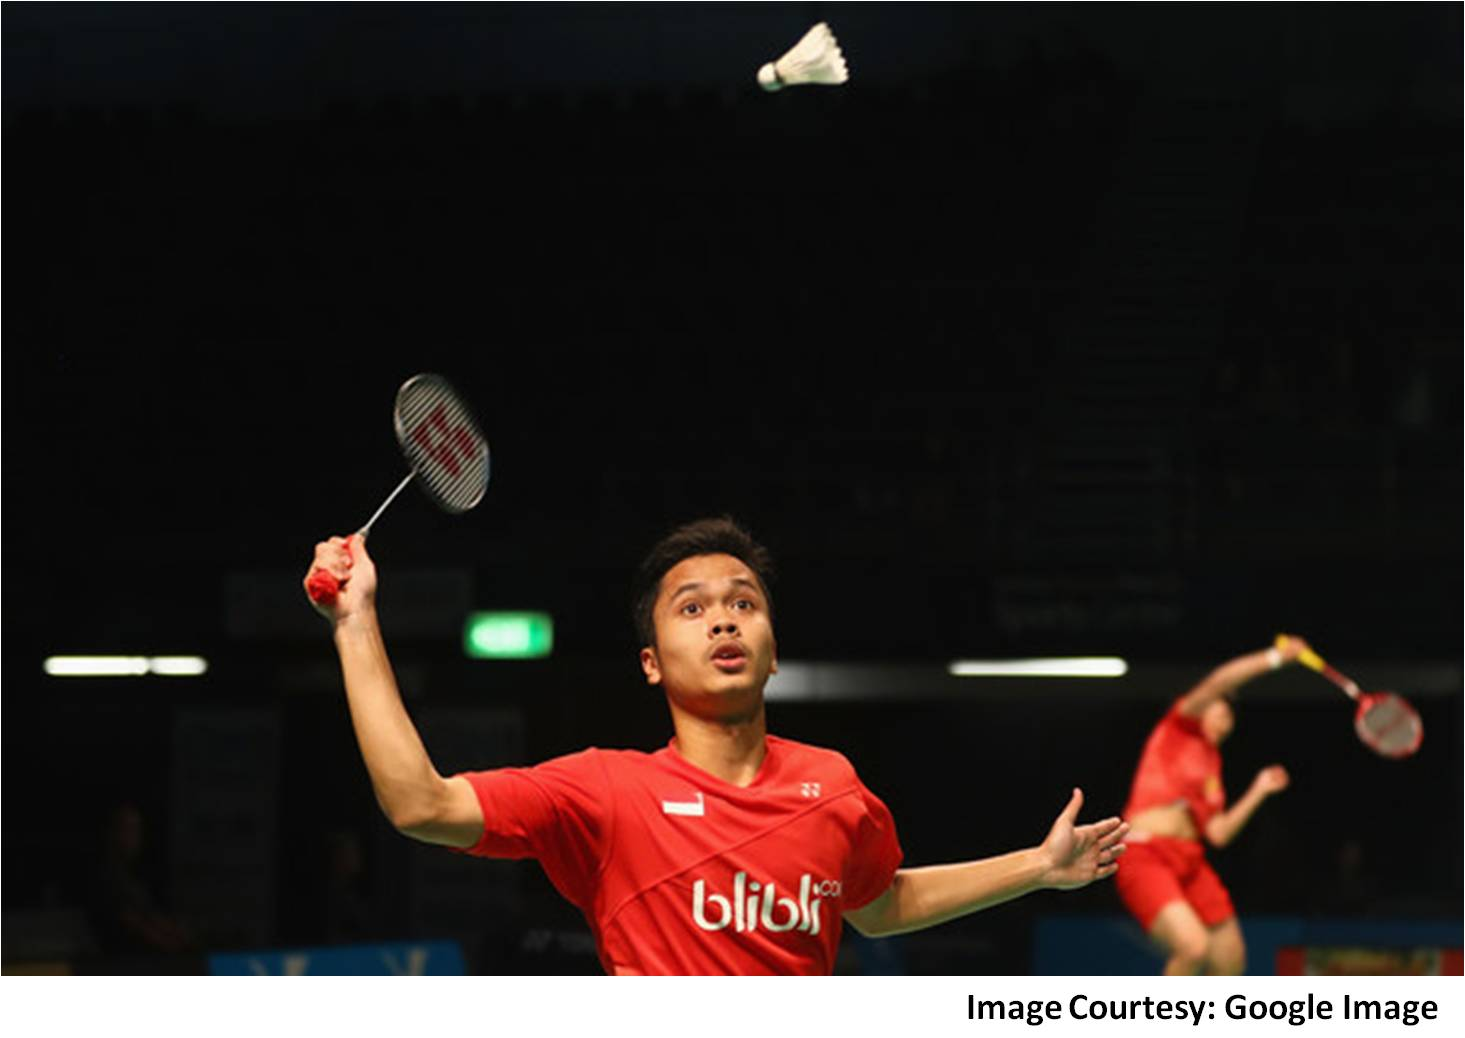 Anthony_Sinisuka_GENTING_Best_Badminton_Player